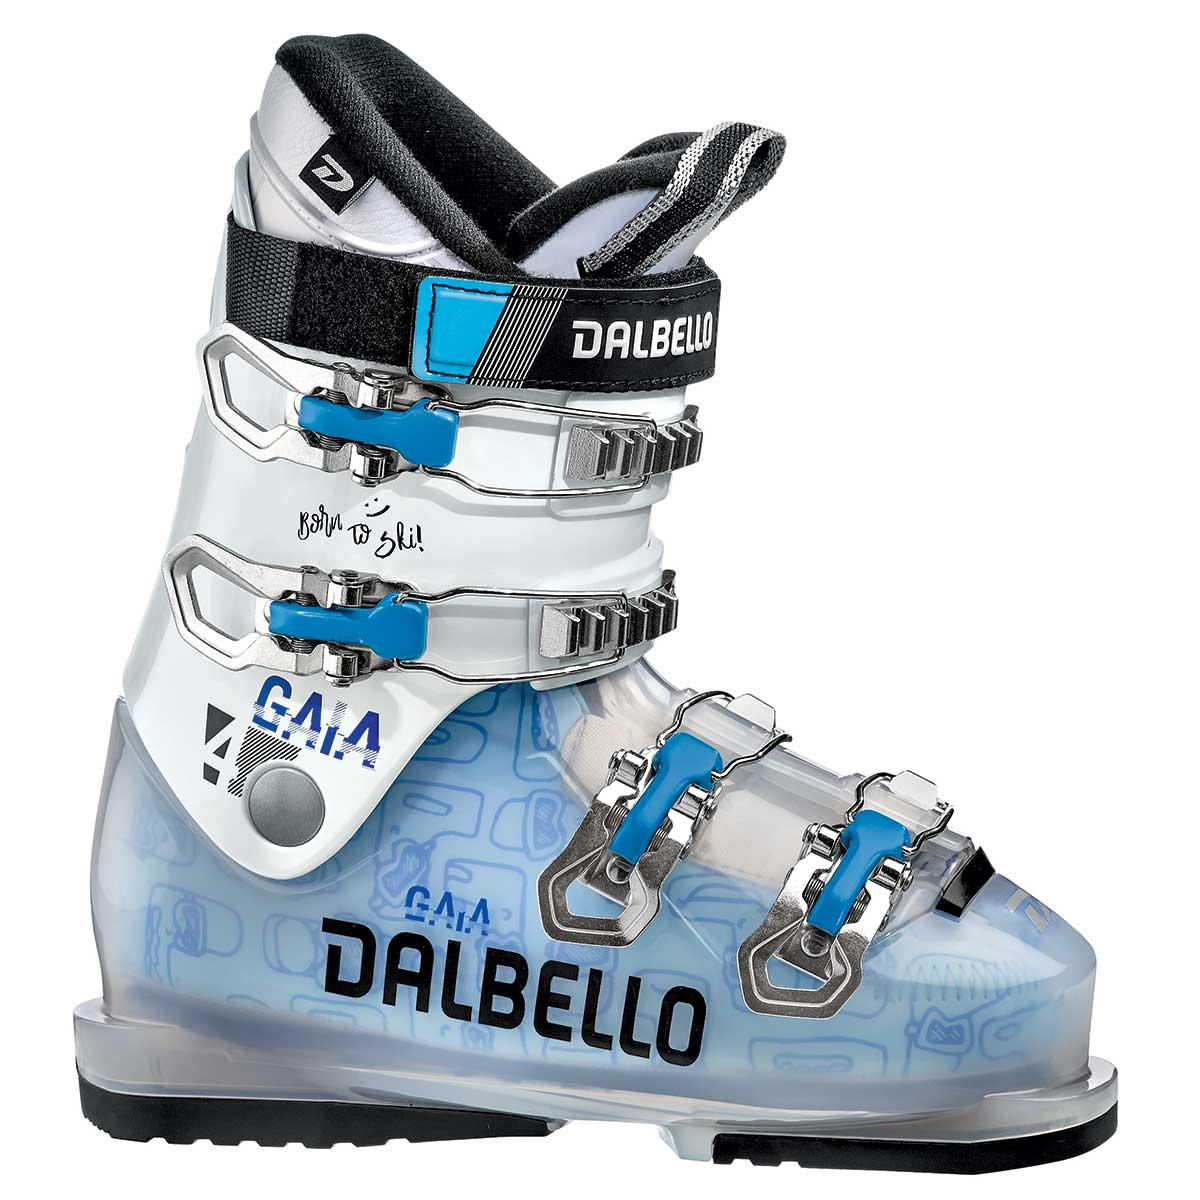 Dalbello Gaia 4 junior ski boot in trans white